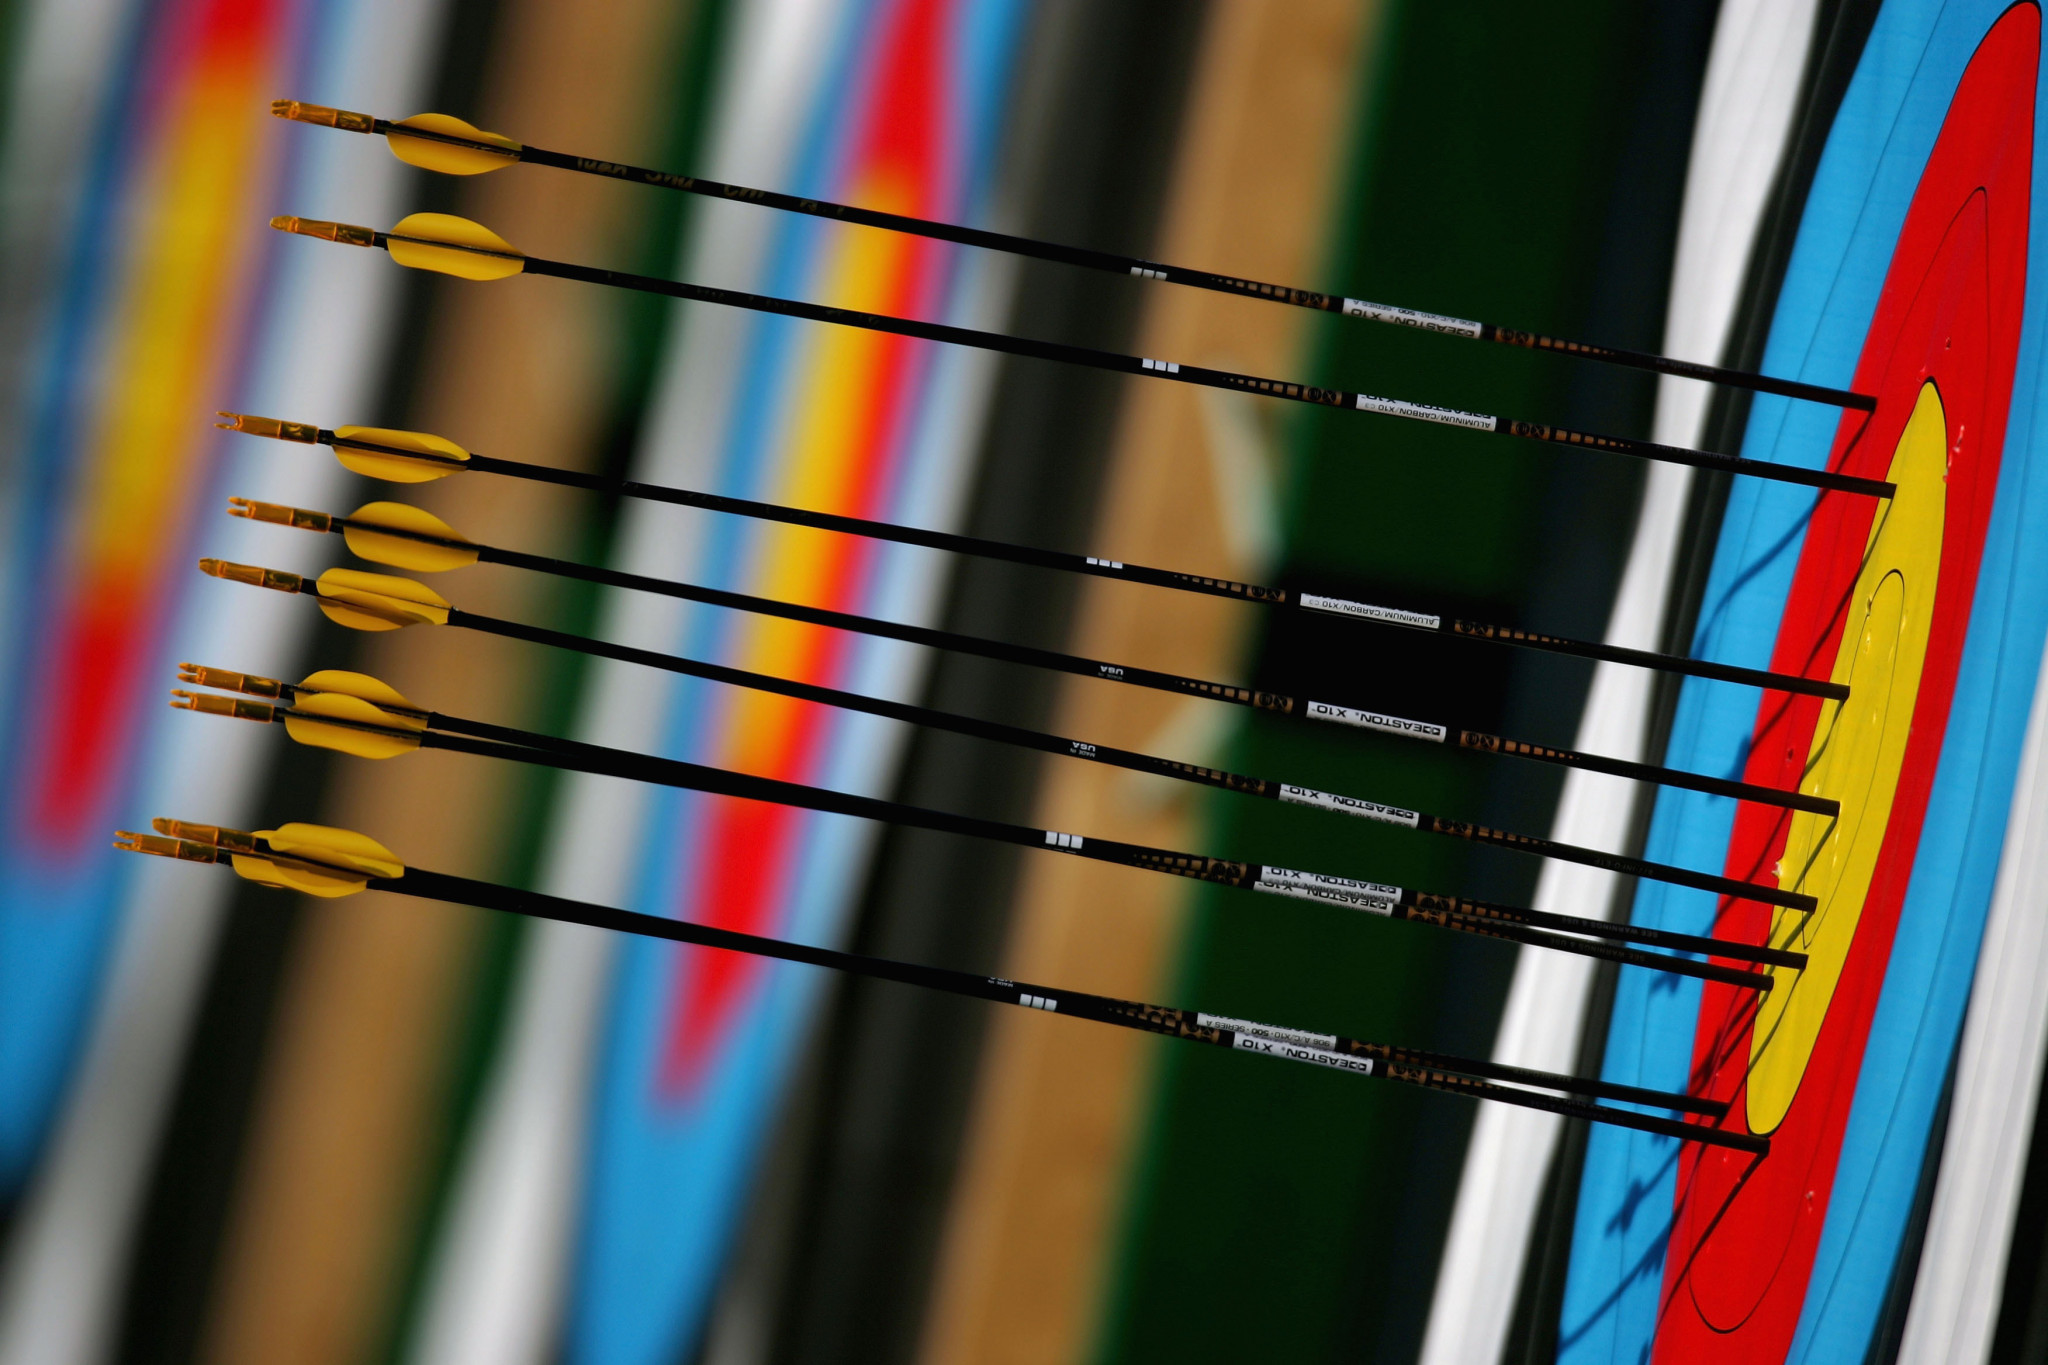 One official said 25 new archery clubs were founded in Nigerian capital Lagos in the last year ©Getty Images